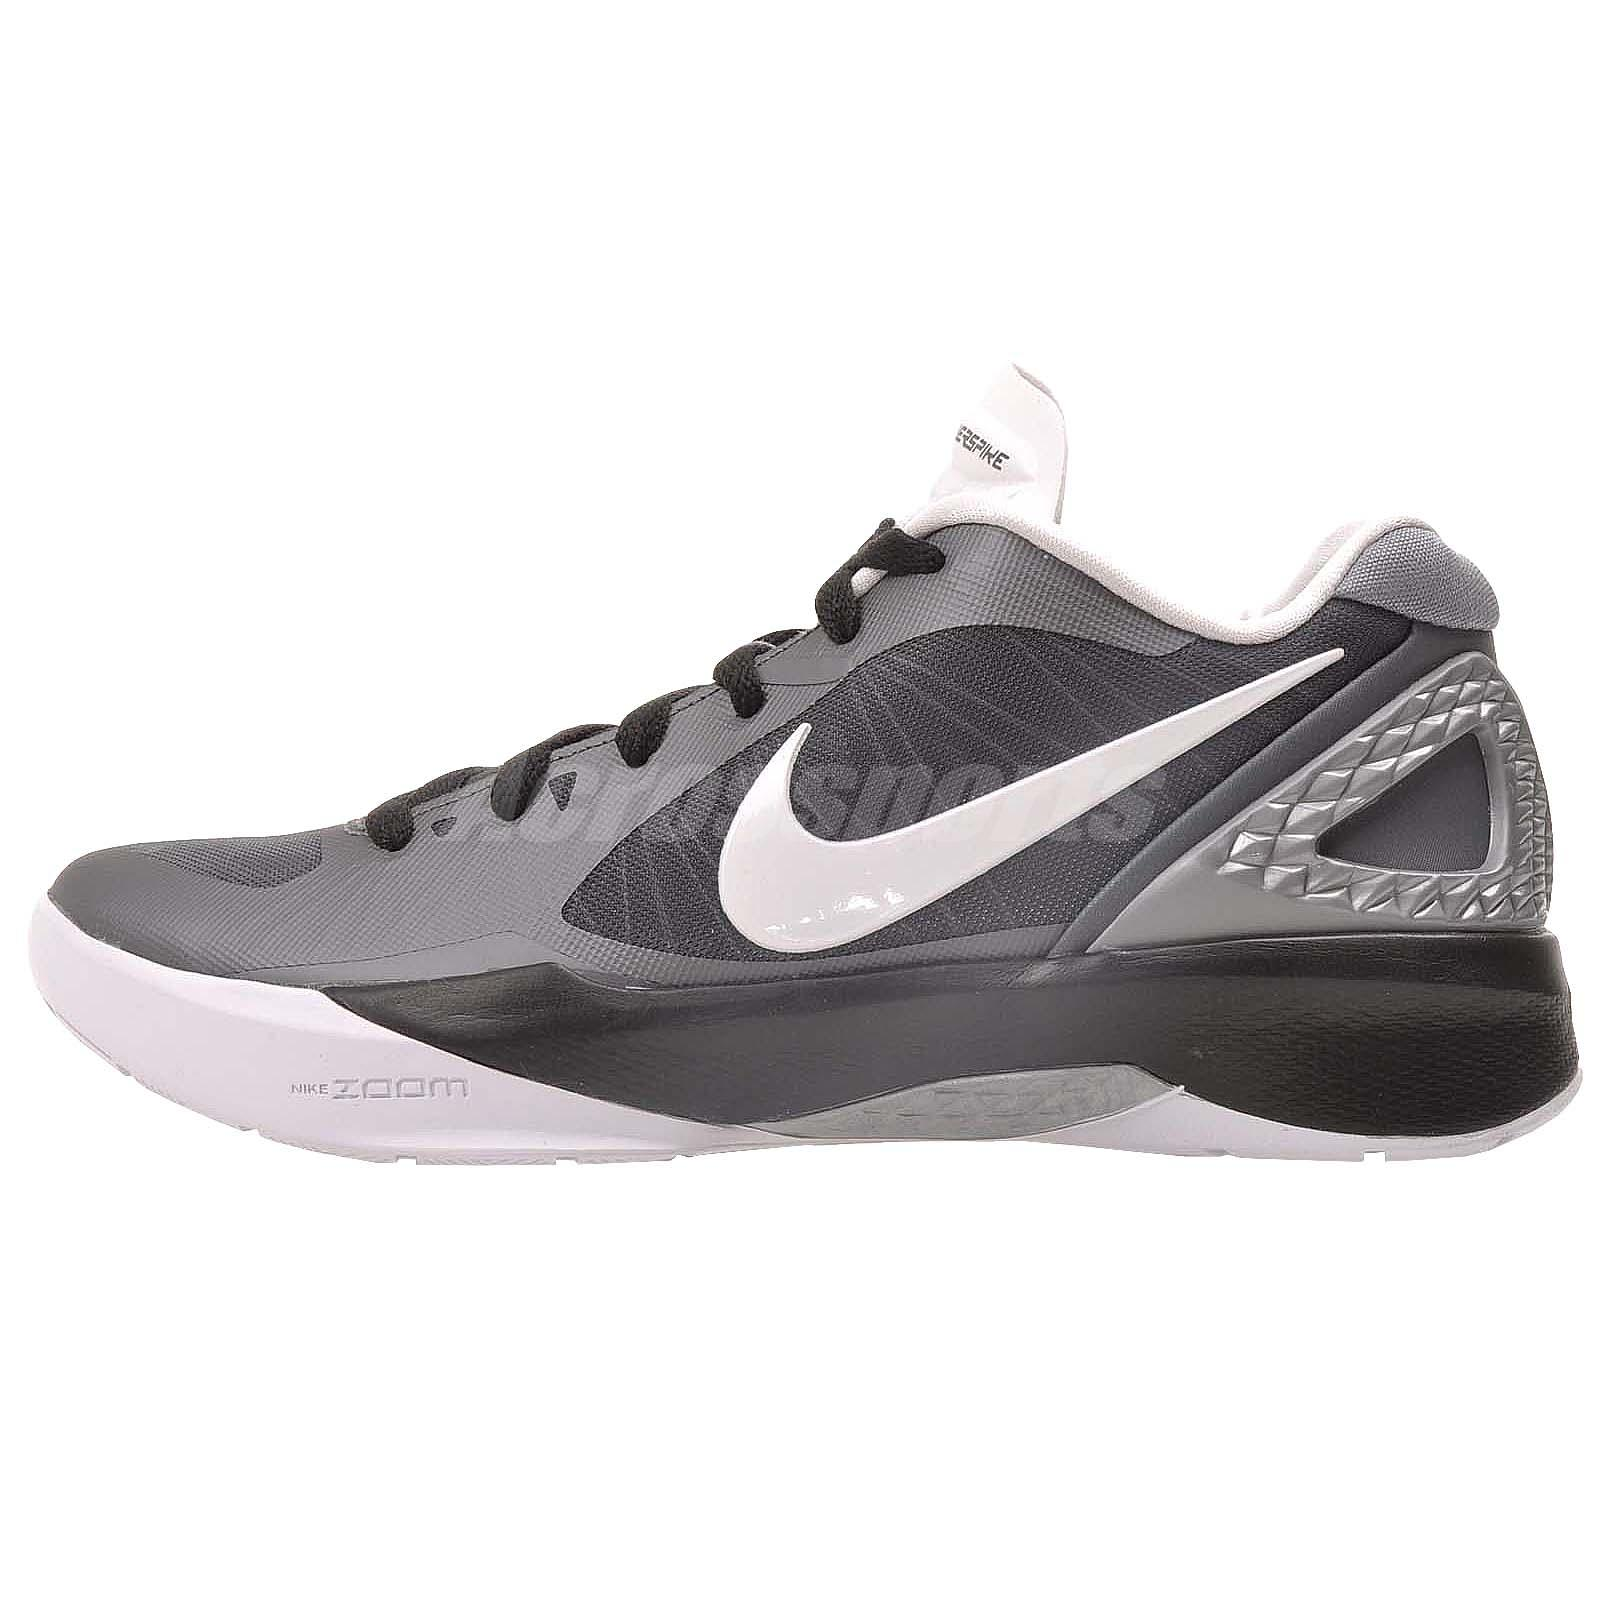 Womens Nike Volleyball Shoes Size